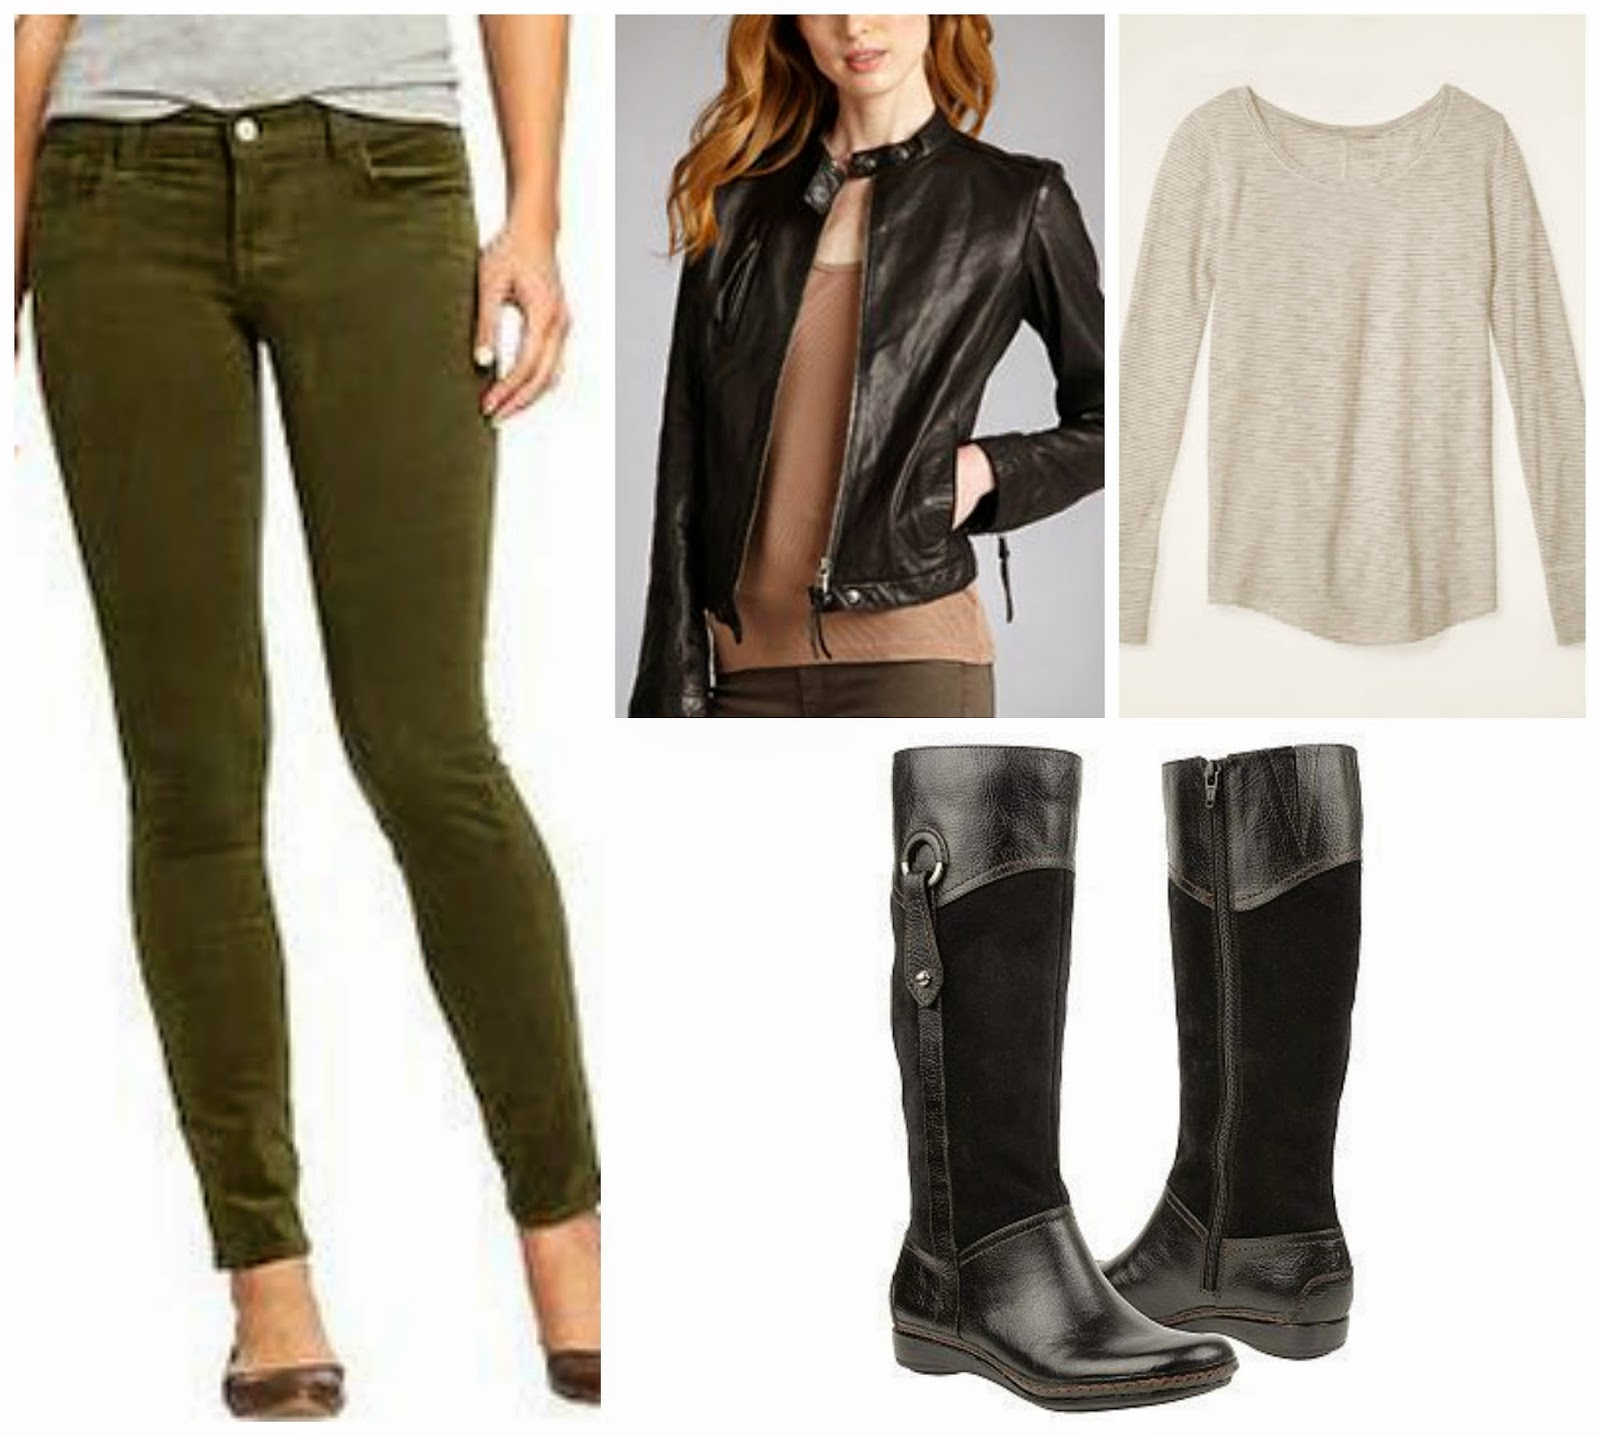 olive pants, moto jacket, striped tee, boots